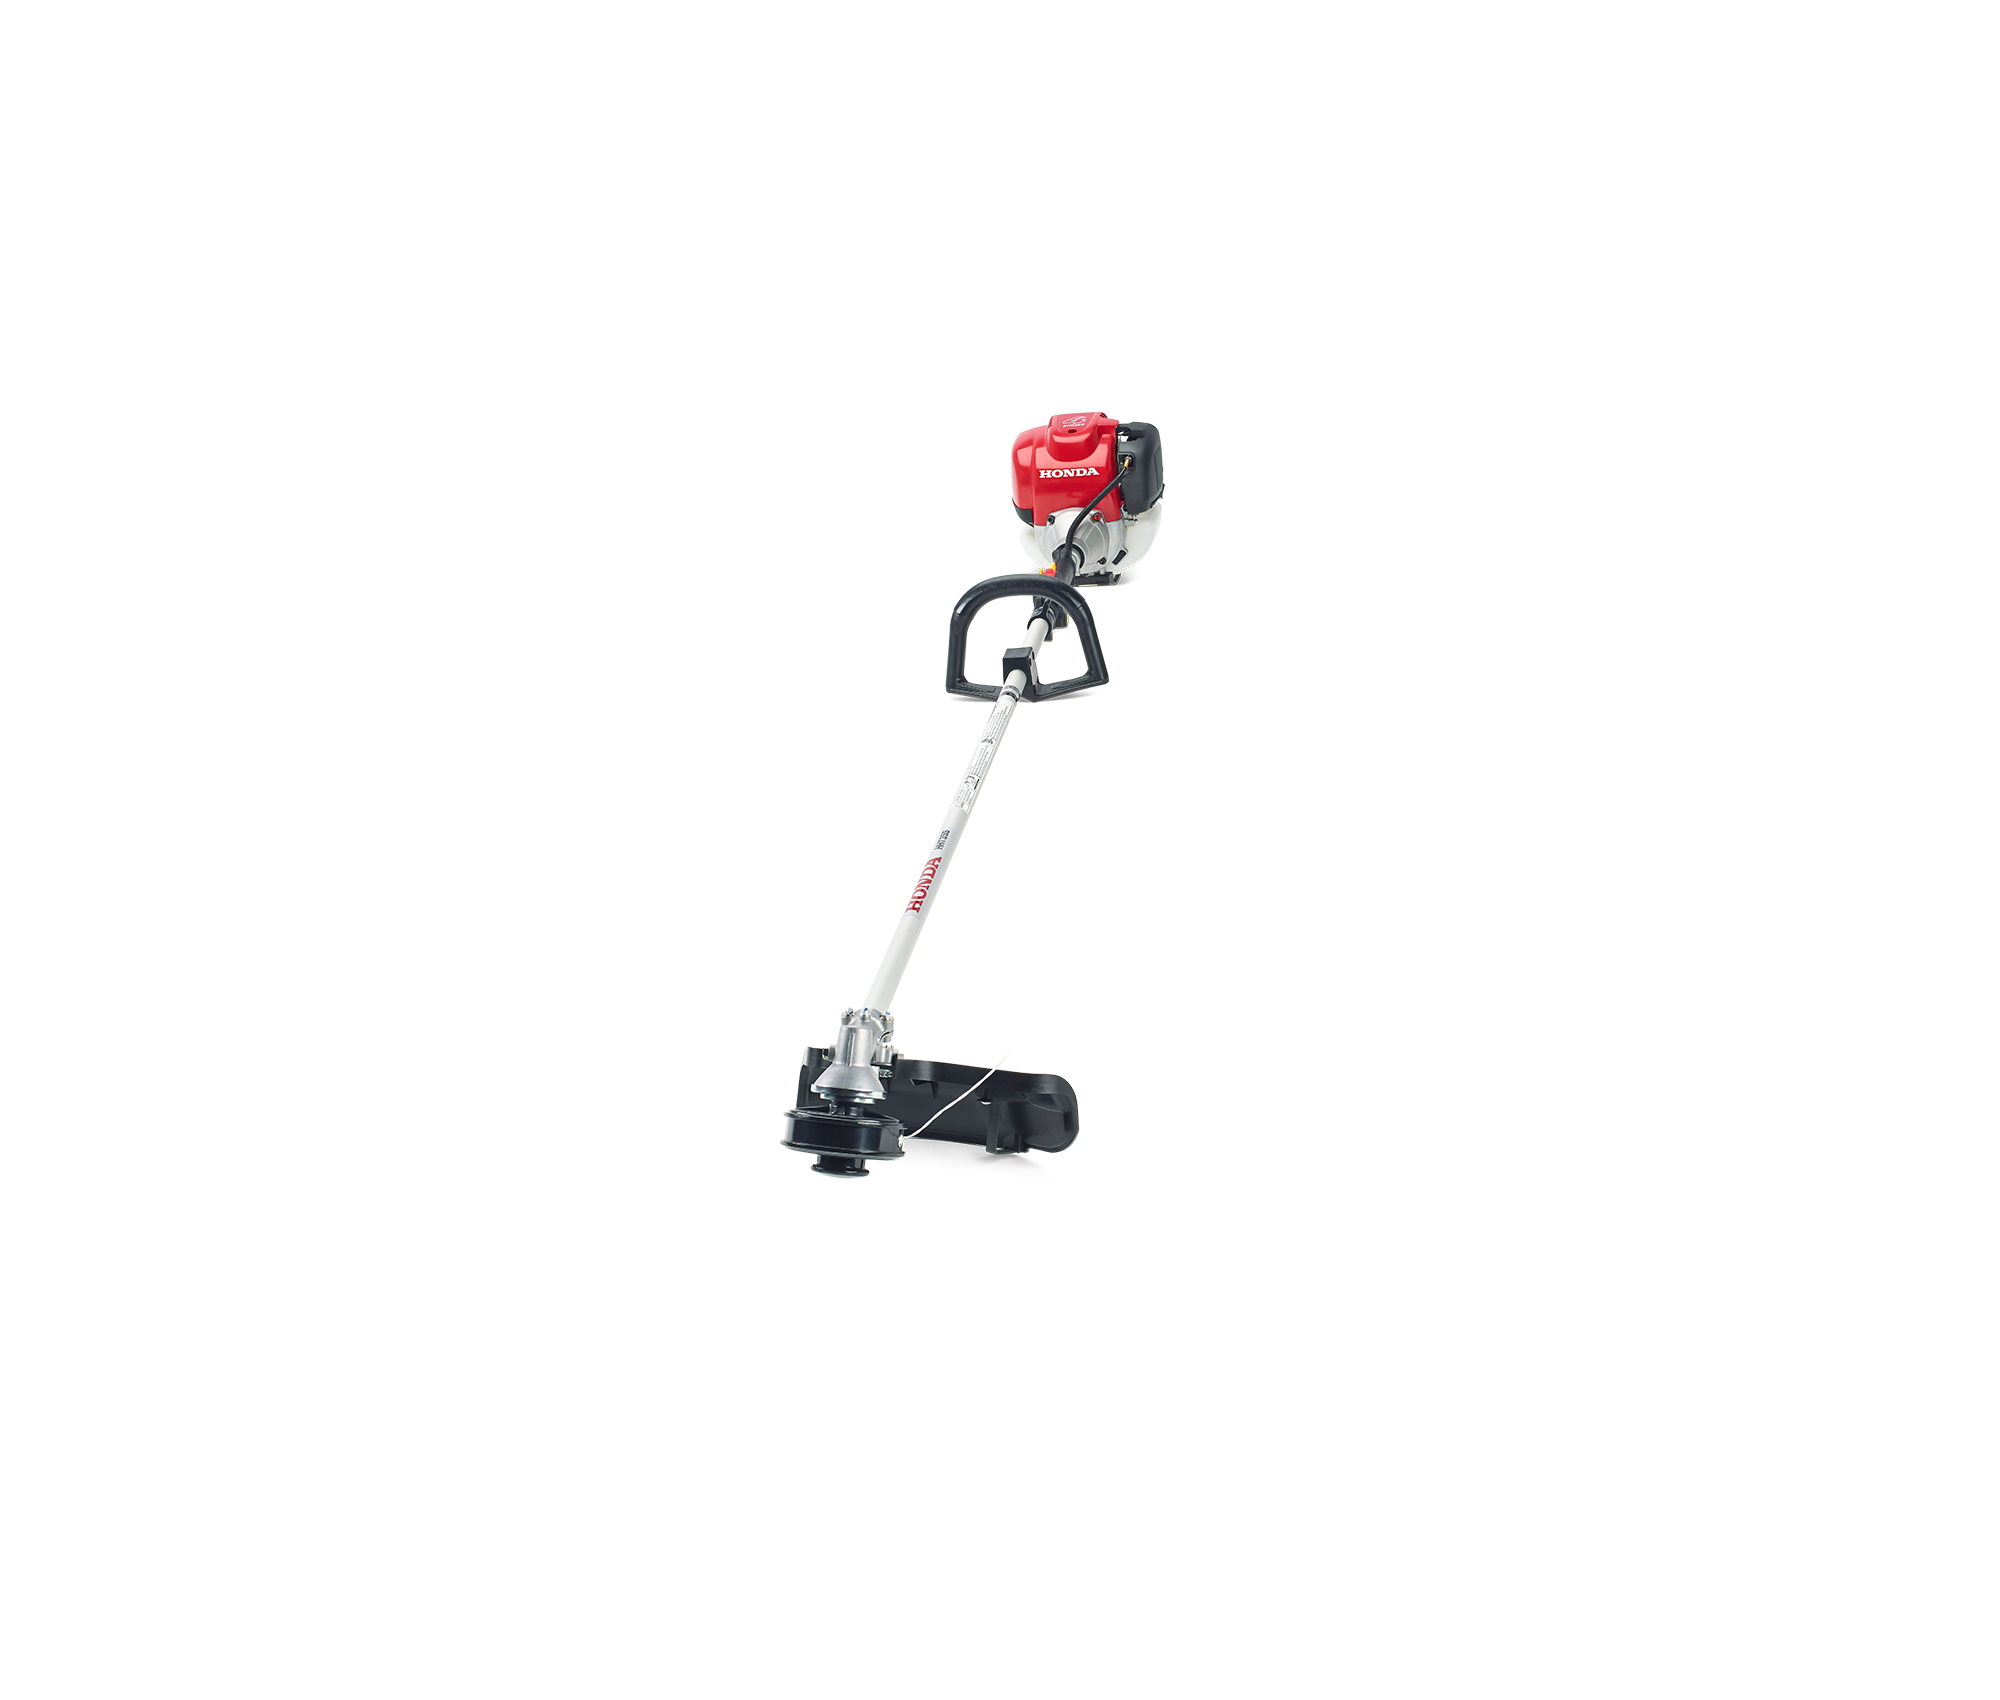 Image of the Loop Handle 35 cc trimmer